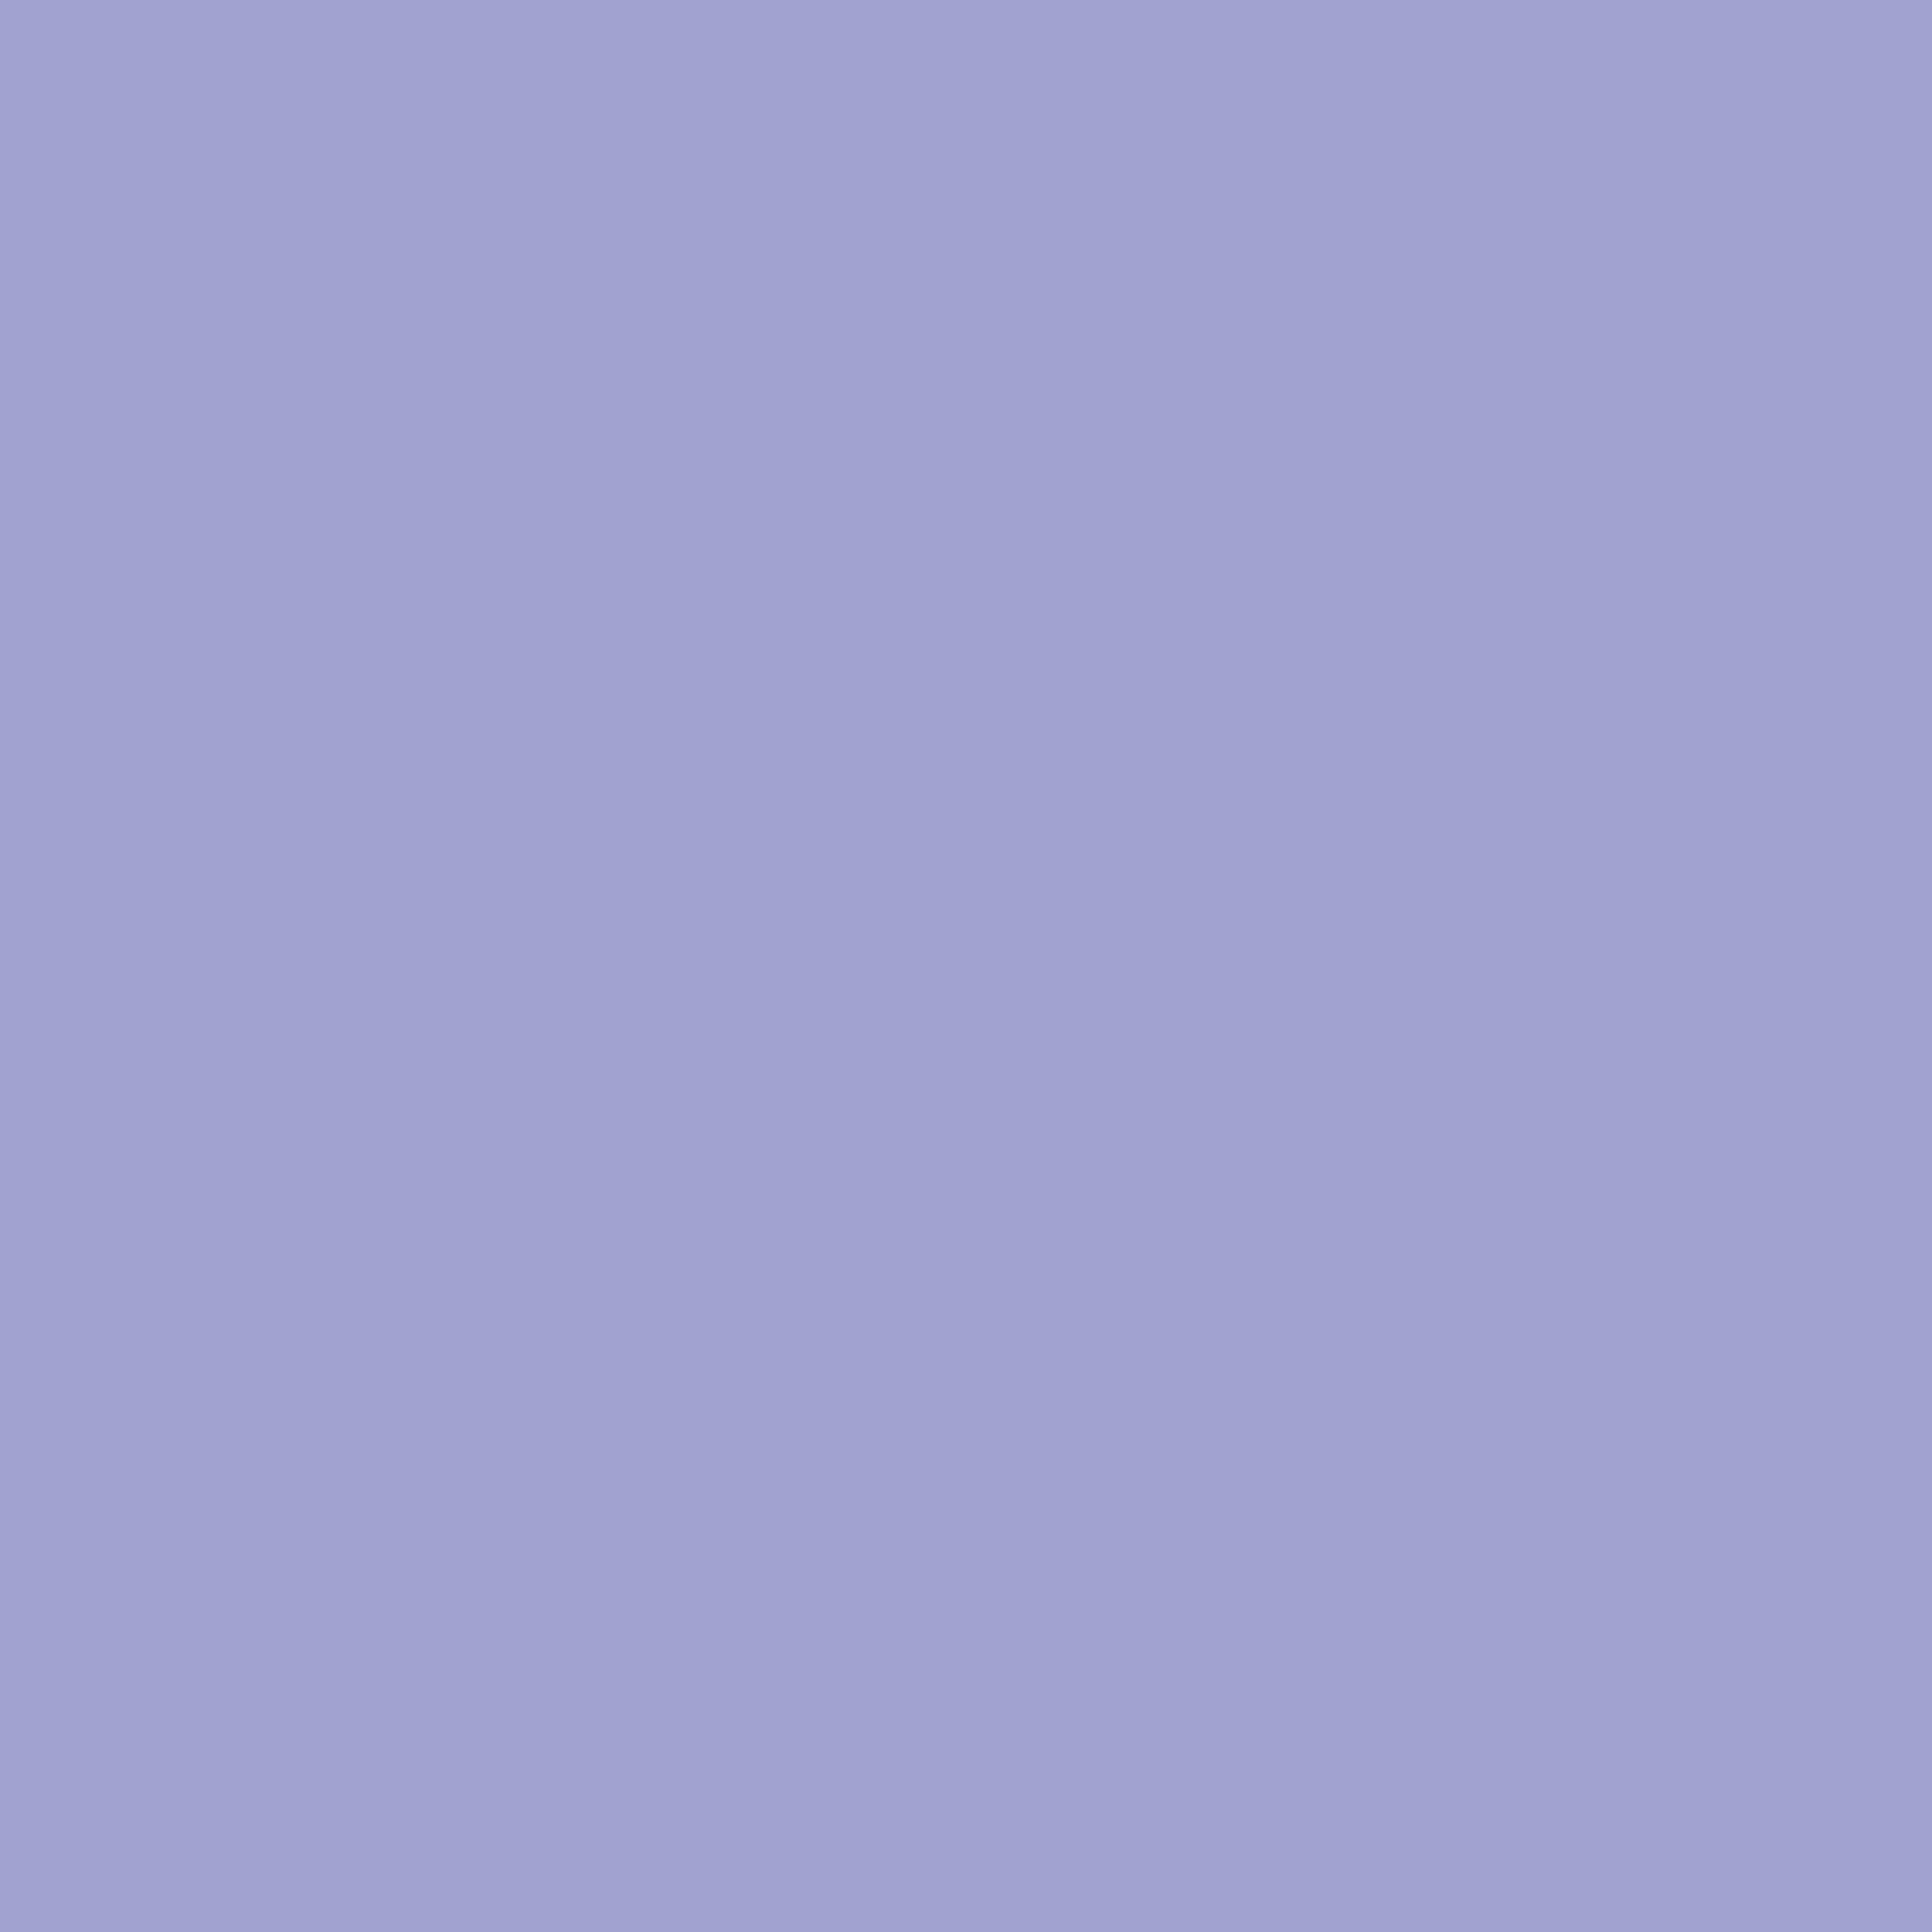 3600x3600 Blue Bell Solid Color Background